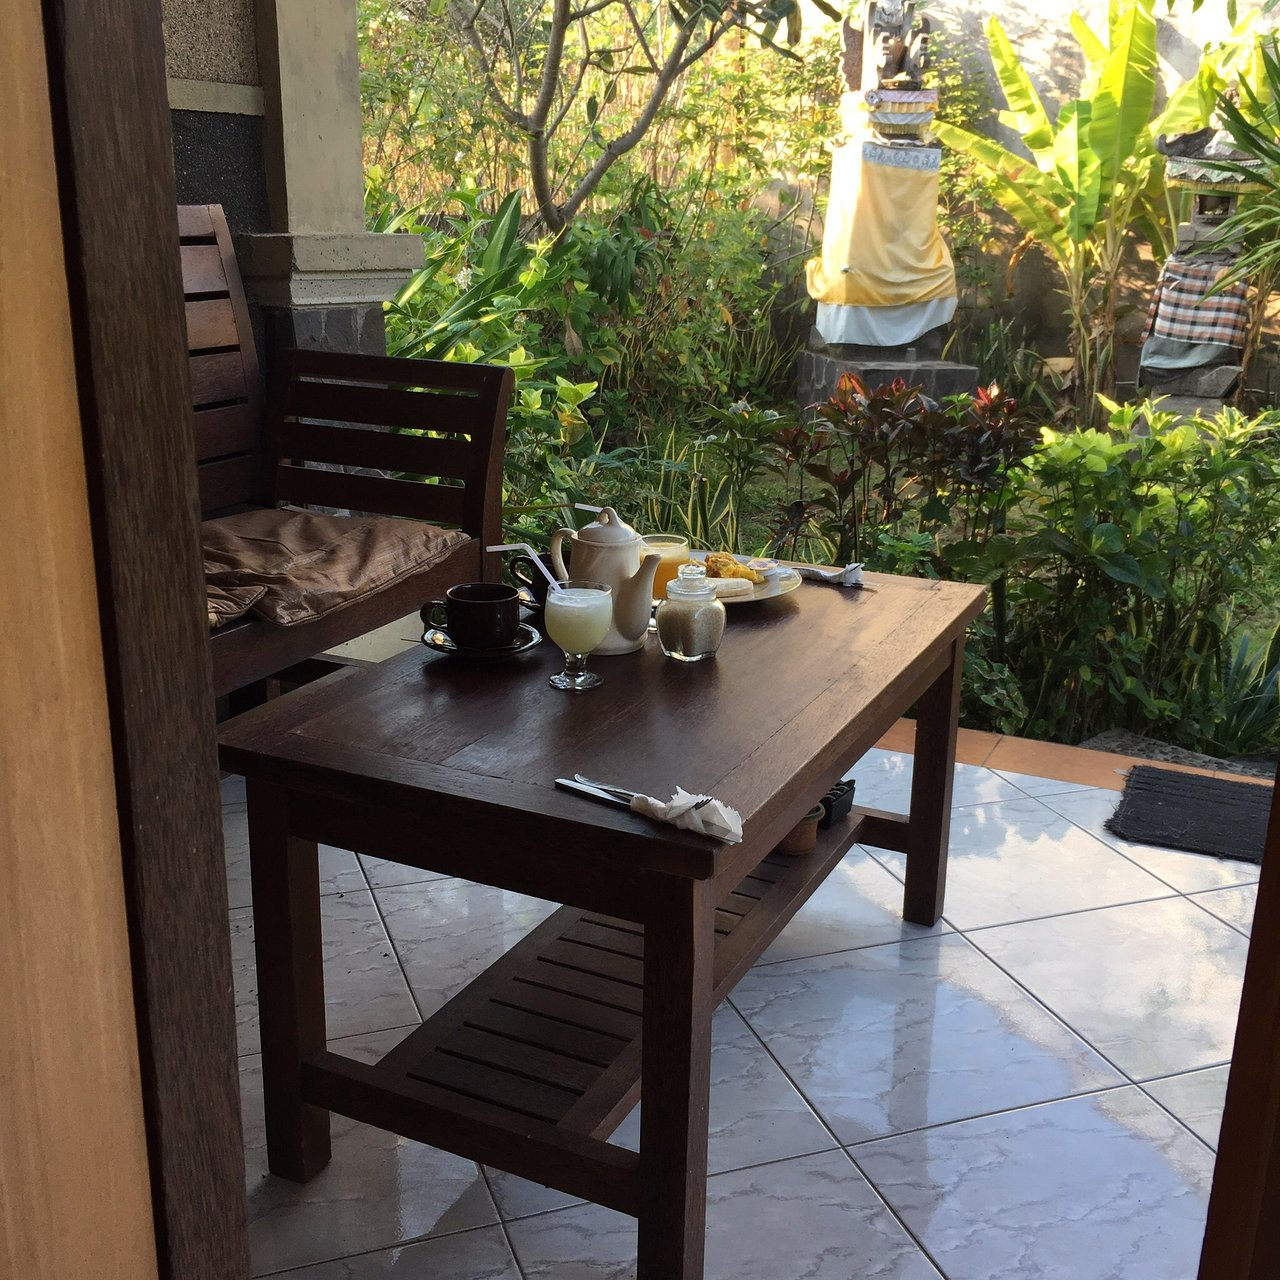 Table A Manger Exterieur Génial Jassri Homestay B&b Pemuteran Bali Tarifs 2019 Mis   Of 37 Unique Table A Manger Exterieur